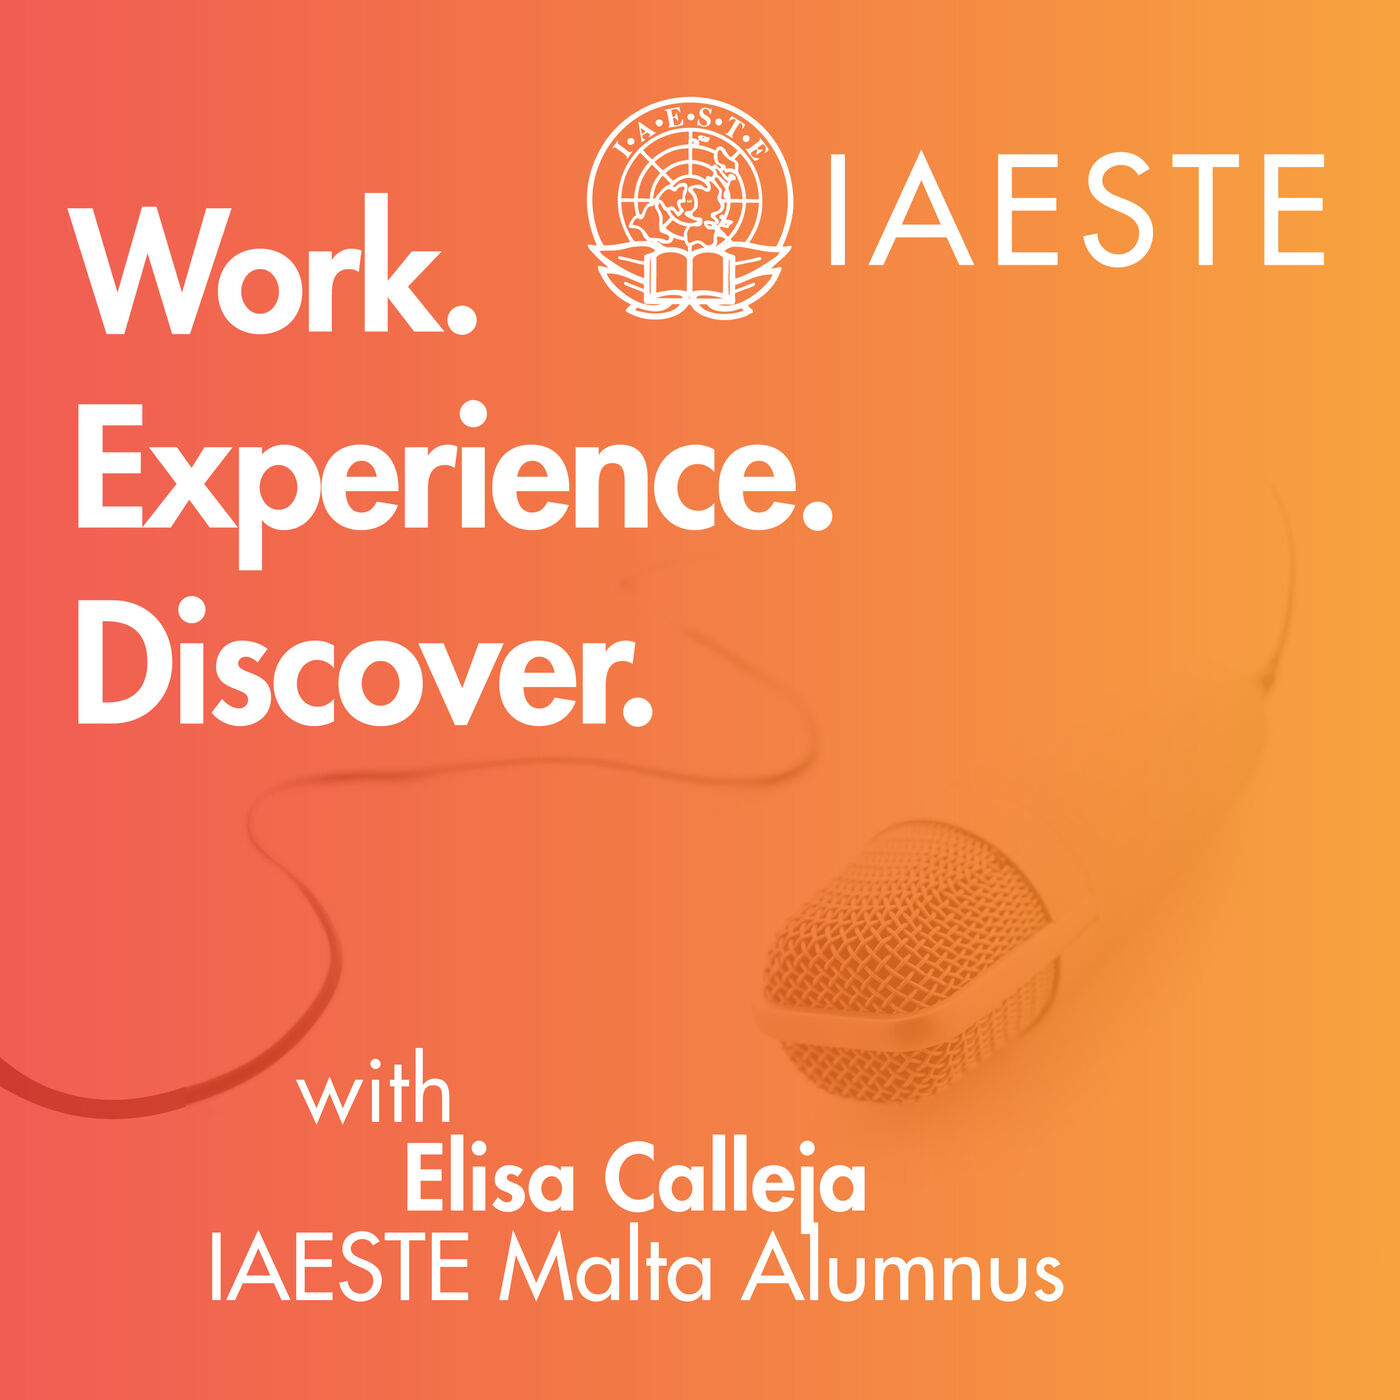 005 - The new IAESTE website! - A chat with Elisa Calleja